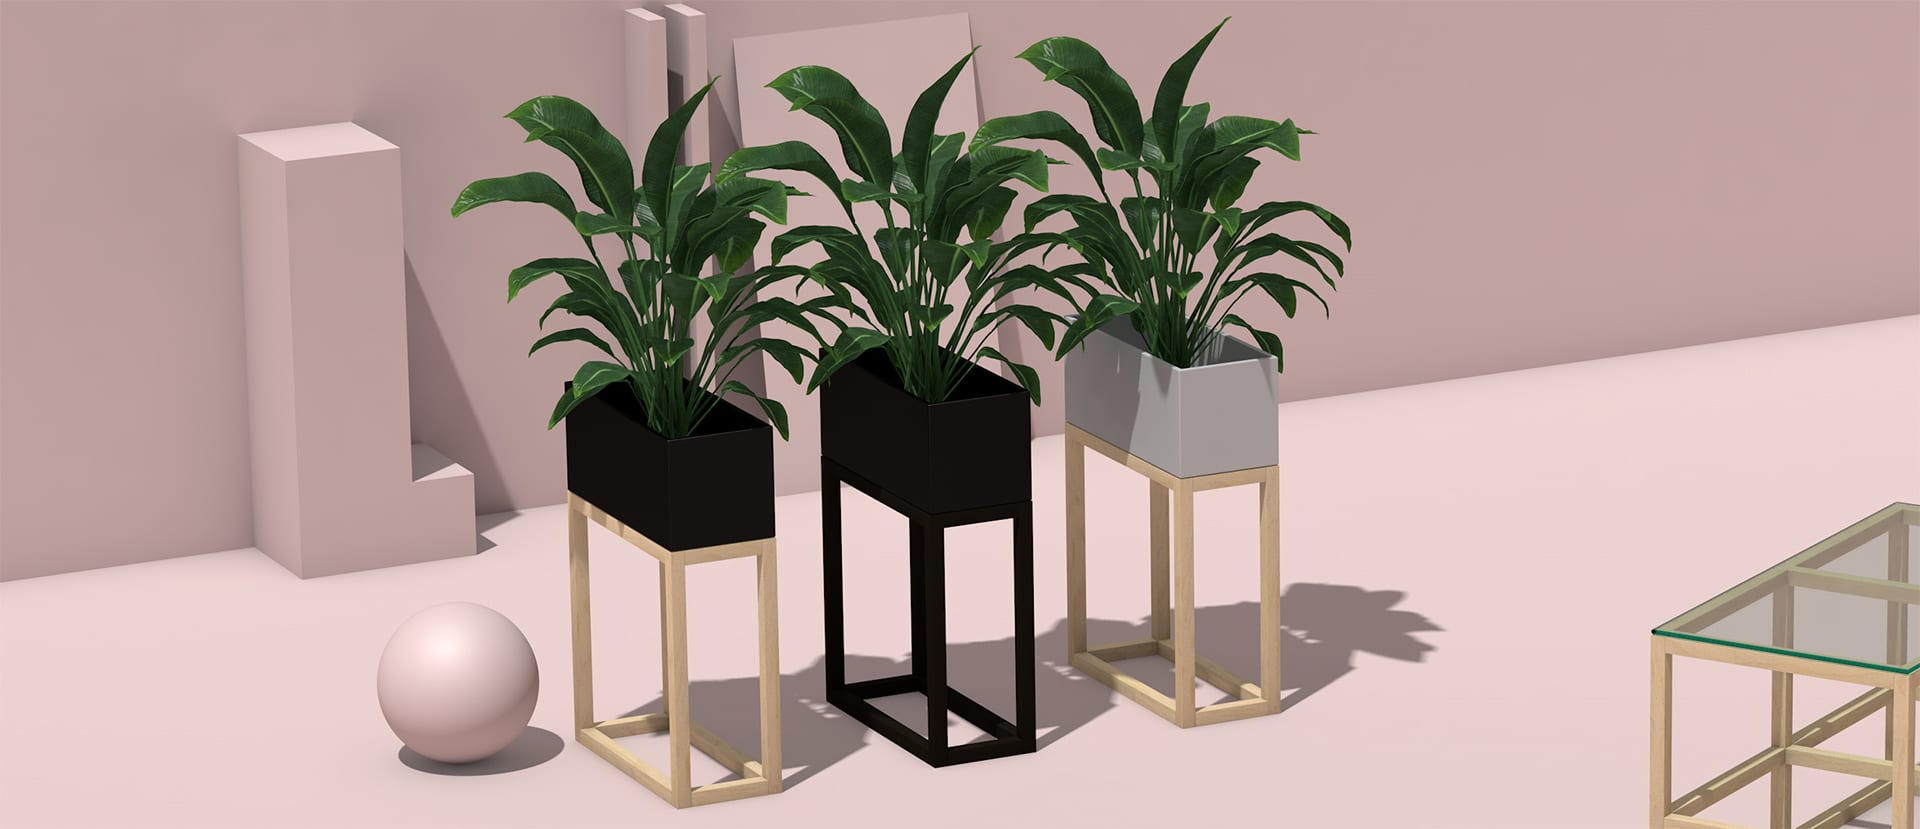 form70-modular-office-funiture-plant-box-wide